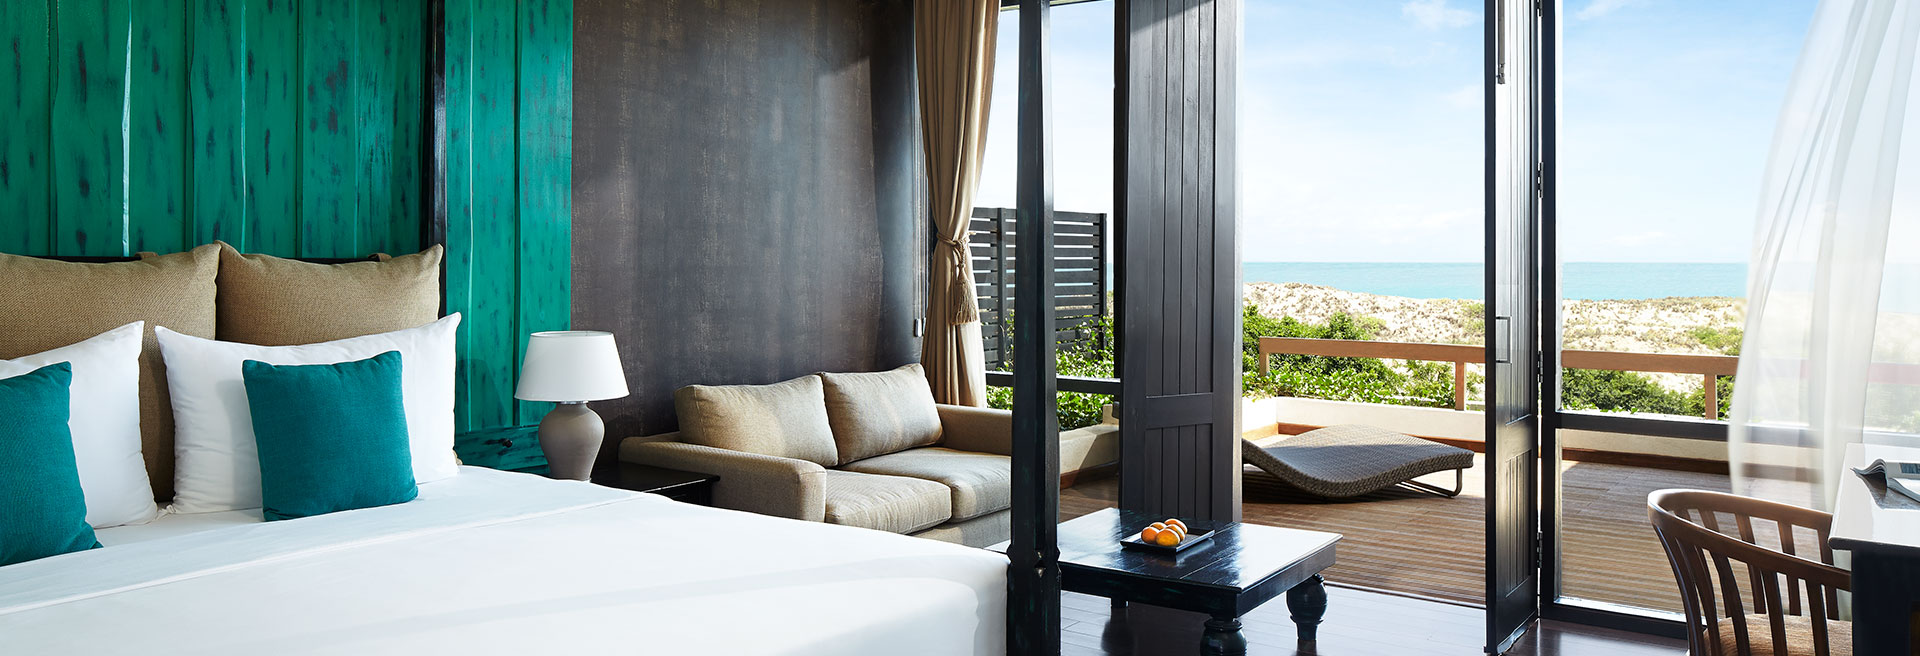 Hotel room with a sea view